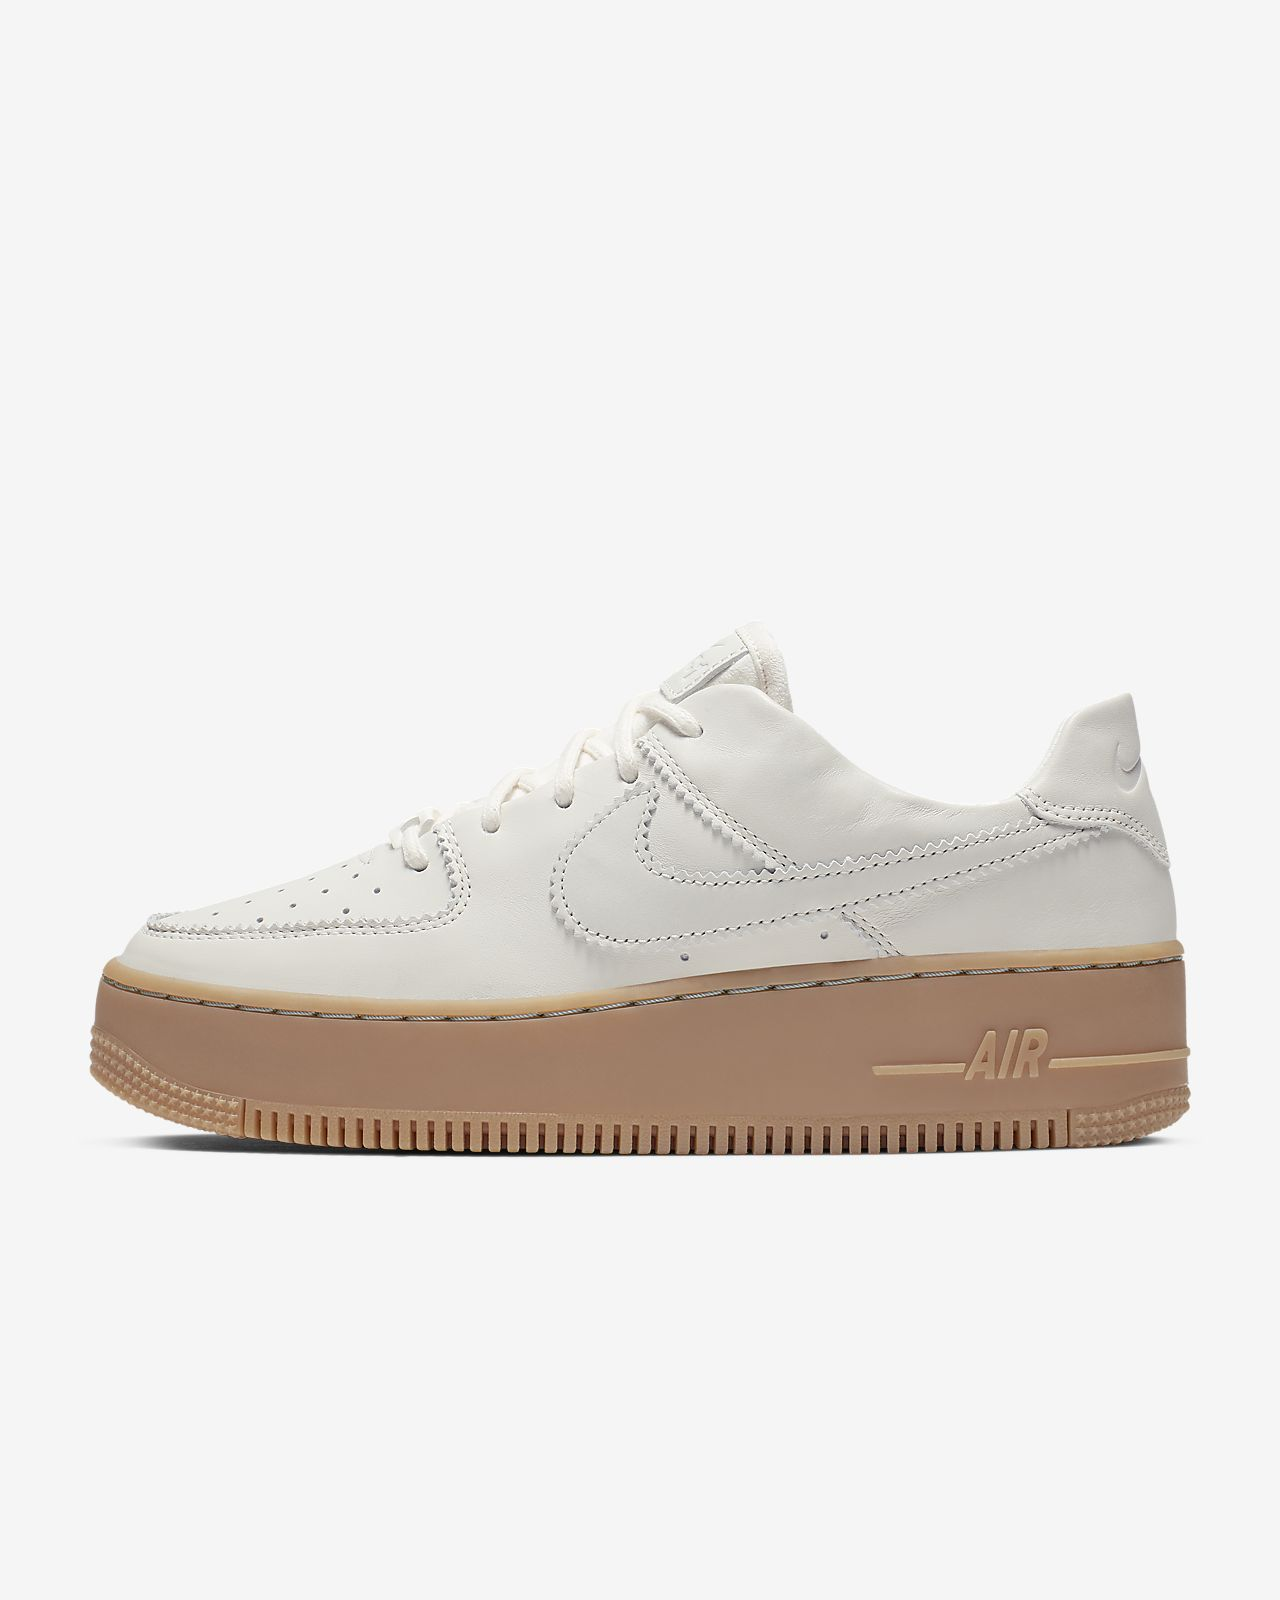 e10cc01d0 Nike Air Force 1 Sage Low LX Women s Shoe. Nike.com GB